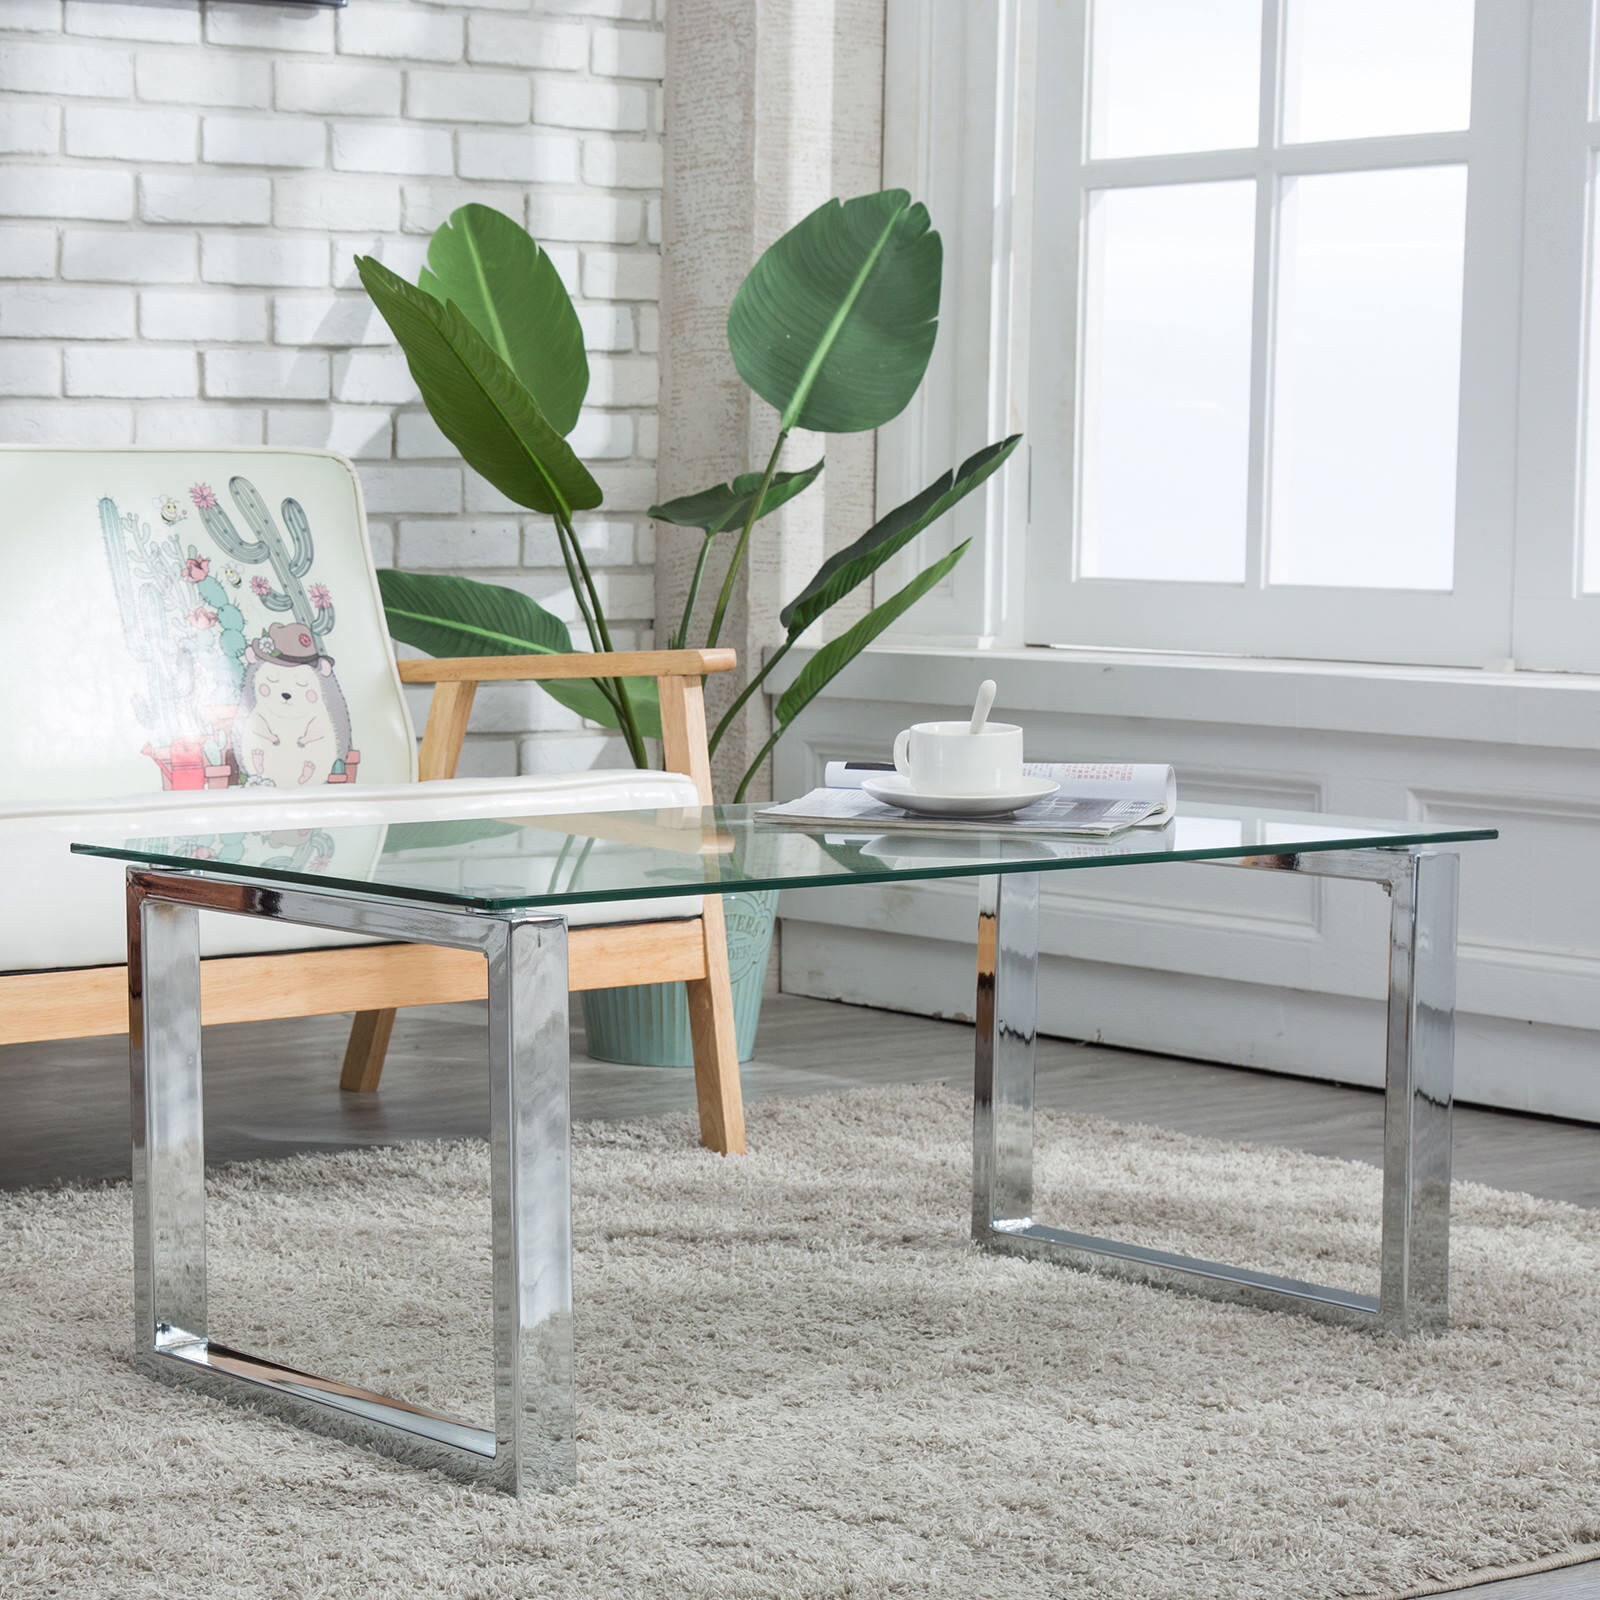 Details about Glass & Stainless Steel Coffee Table Side End Table Living  Room Furniture Clear